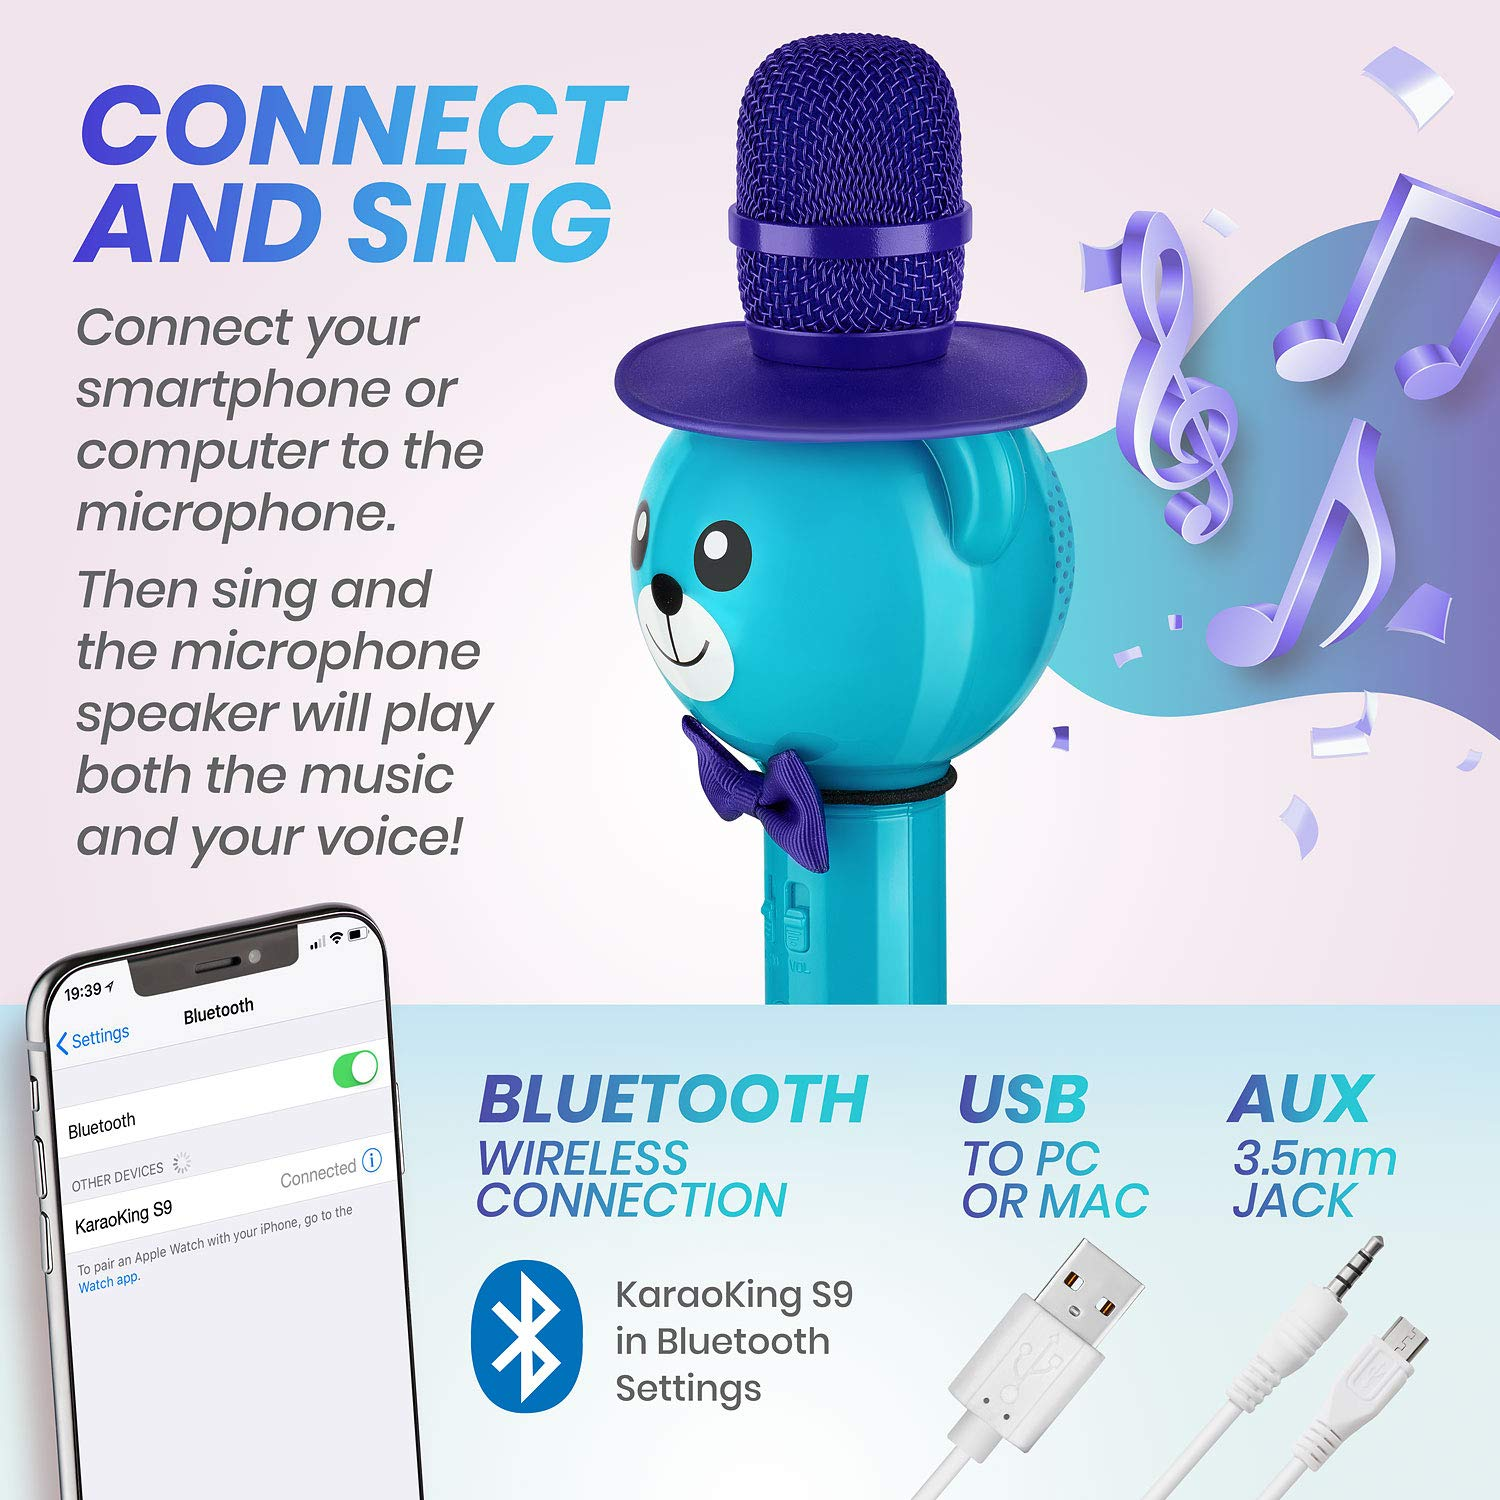 Wireless Karaoke Microphone for Kids - Bluetooth Mic Great for Solo Singing, KTV Parties, Magic Boys & Girls Christmas or Birthday Gifts - Portable Karaoke Machine for Kids Pop [Blue] by KaraoKing by KaraoKing (Image #4)